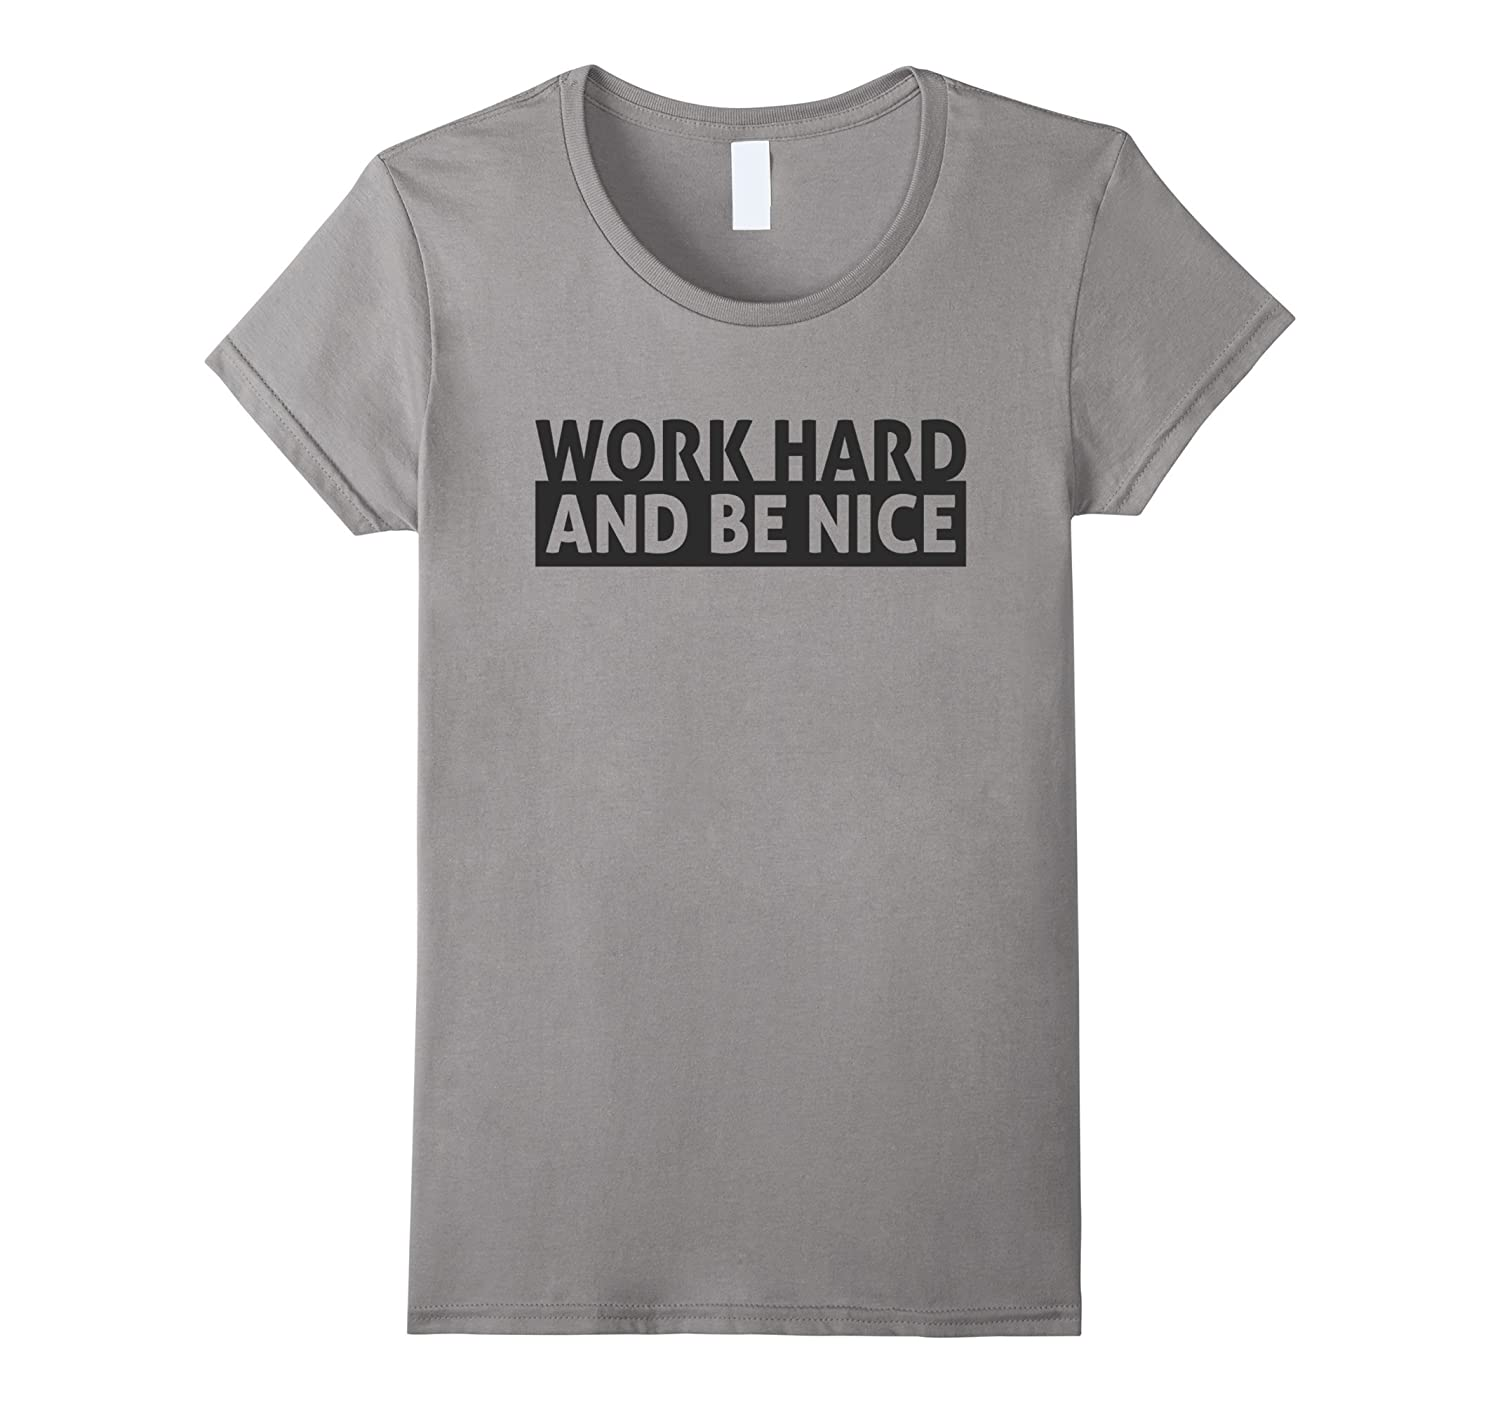 Womens Work Hard And Be Nice Women's Tee Shirt-RT